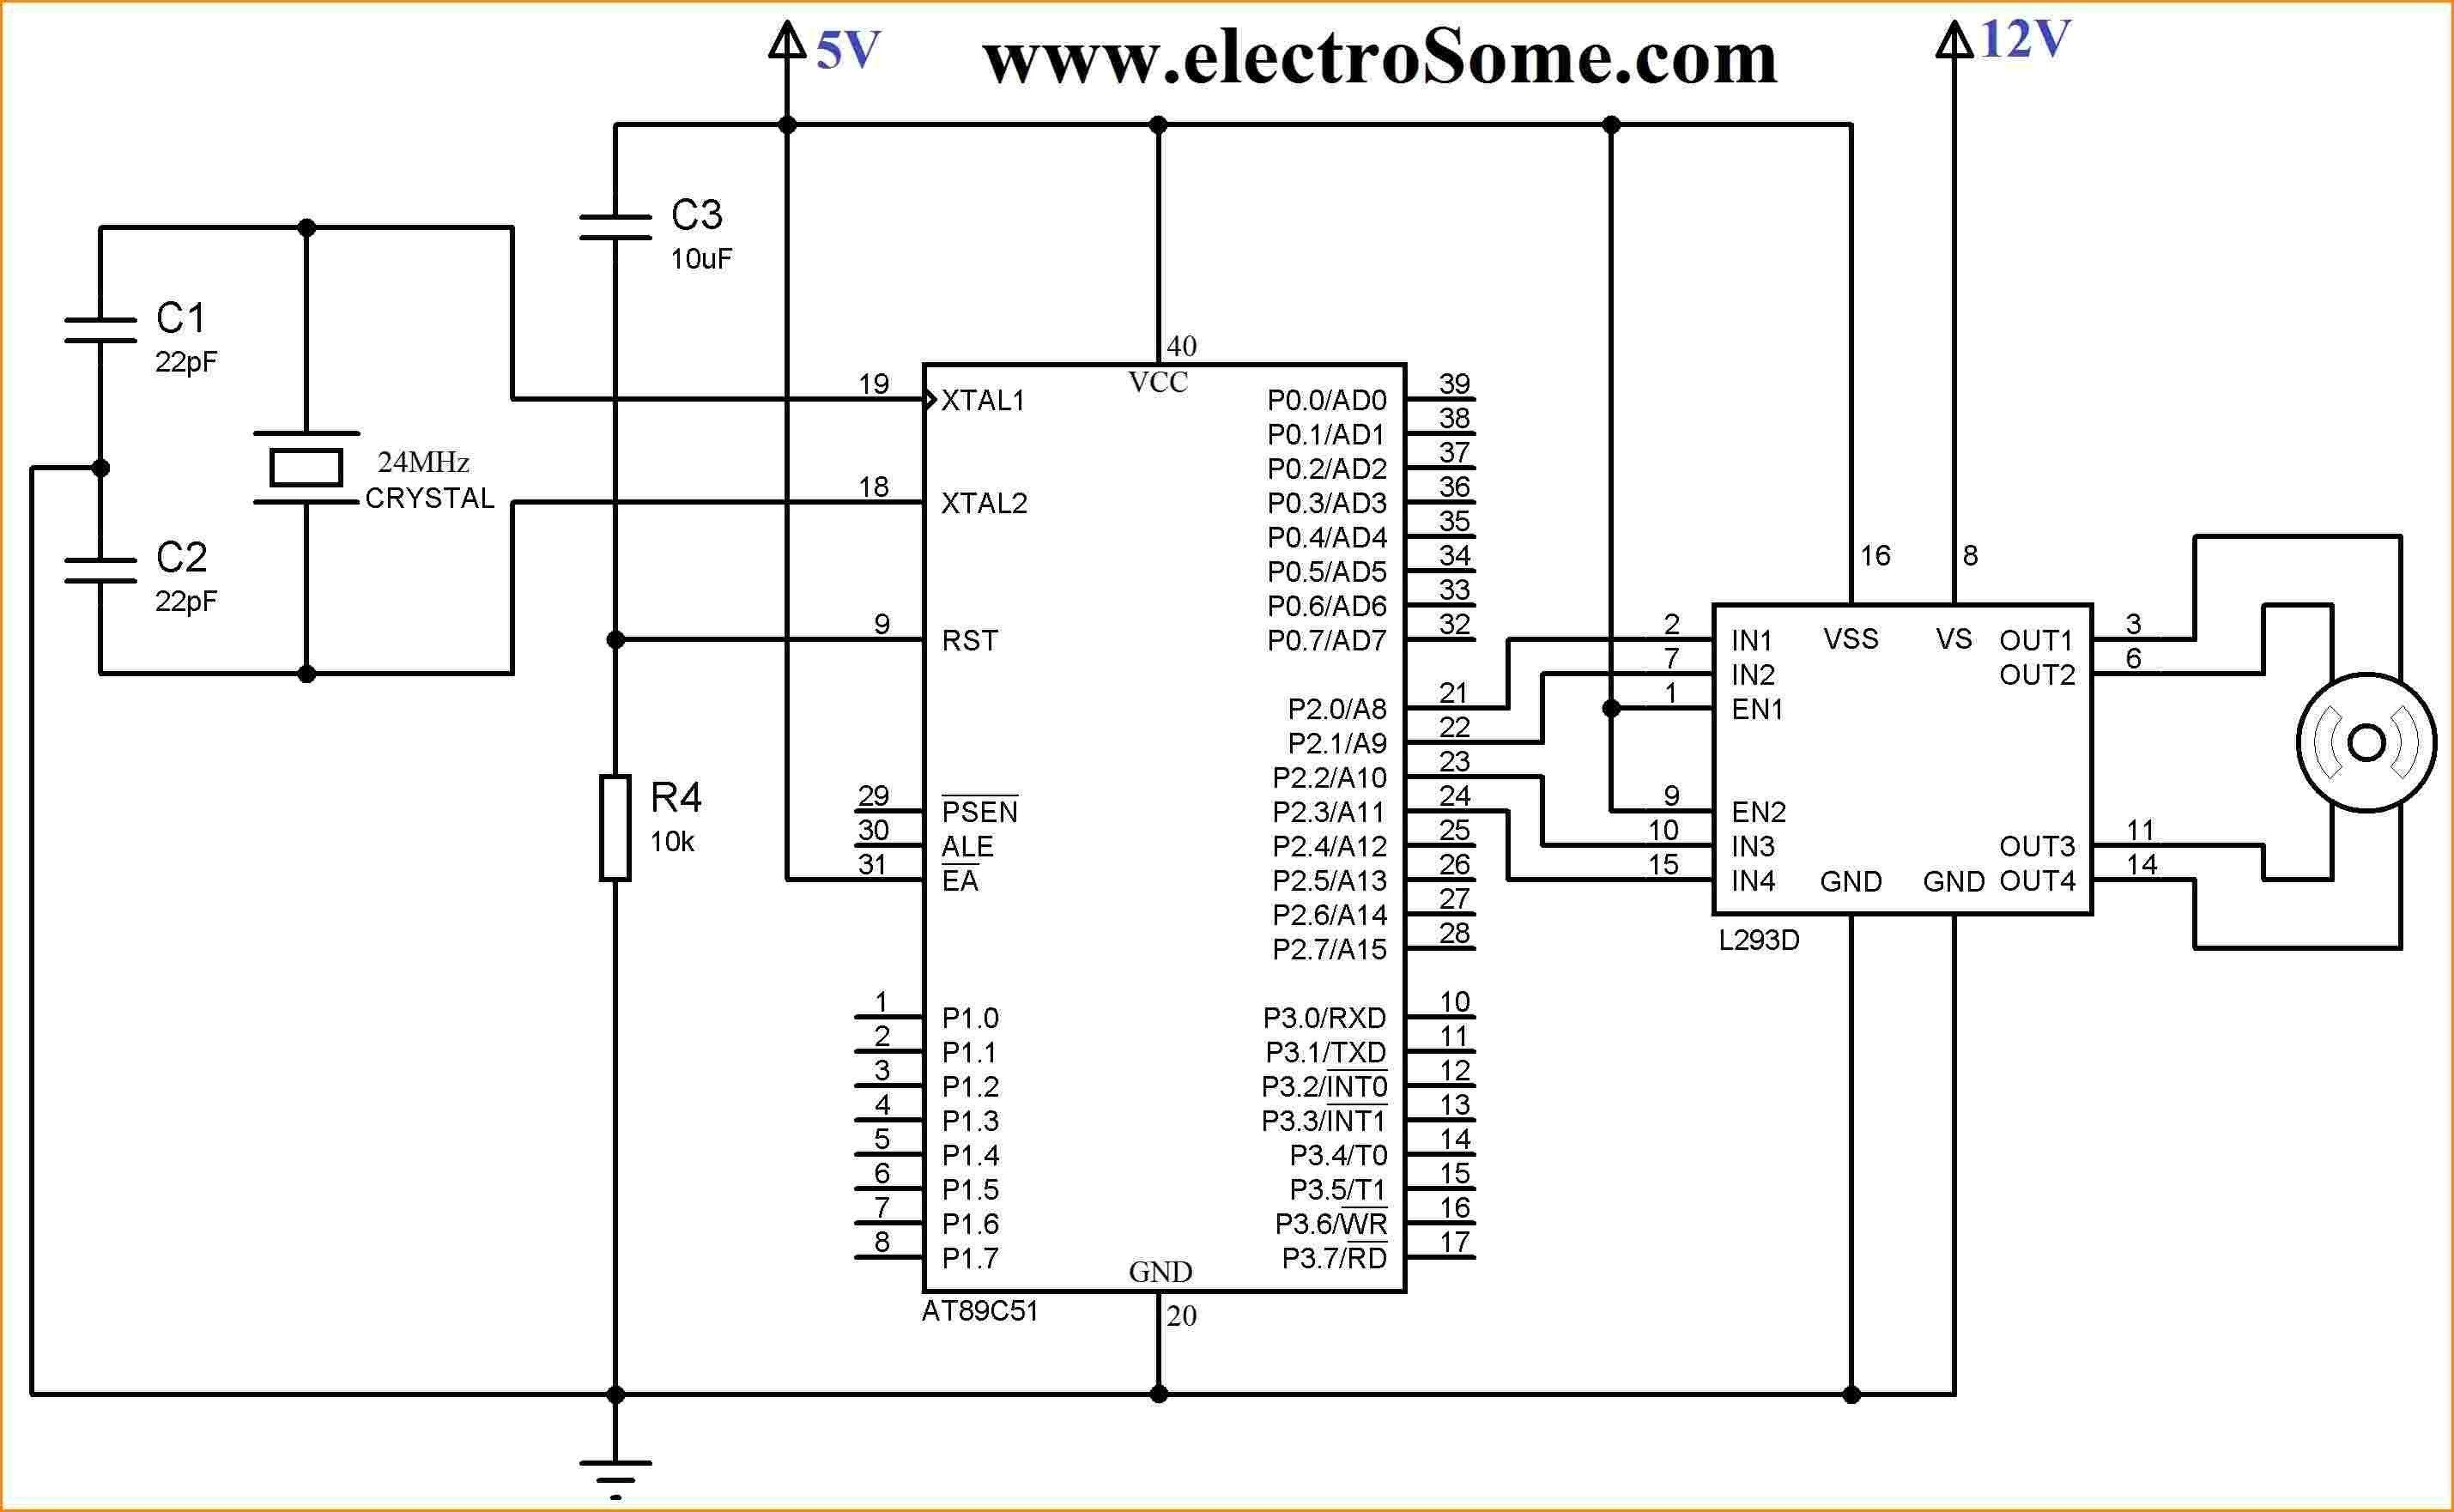 Swann Security Camera N3960 Wiring Diagram Collection Electrical For  intended for Swann N3960 Wiring Diagram helloo | Security camera, Diagram,  House wiringPinterest